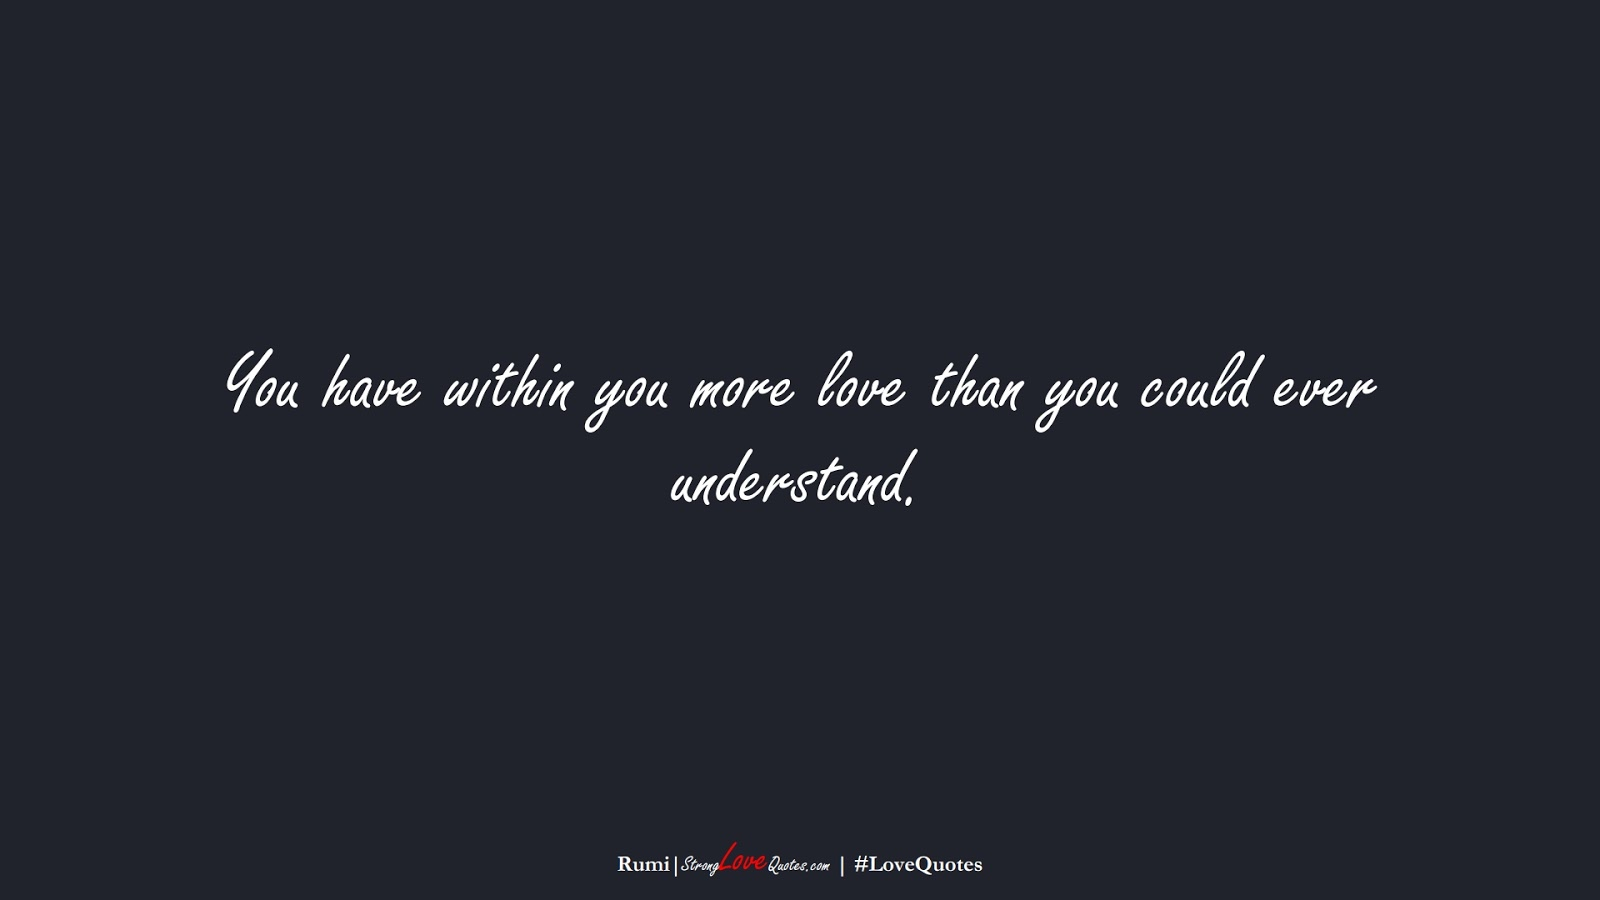 You have within you more love than you could ever understand. (Rumi);  #LoveQuotes